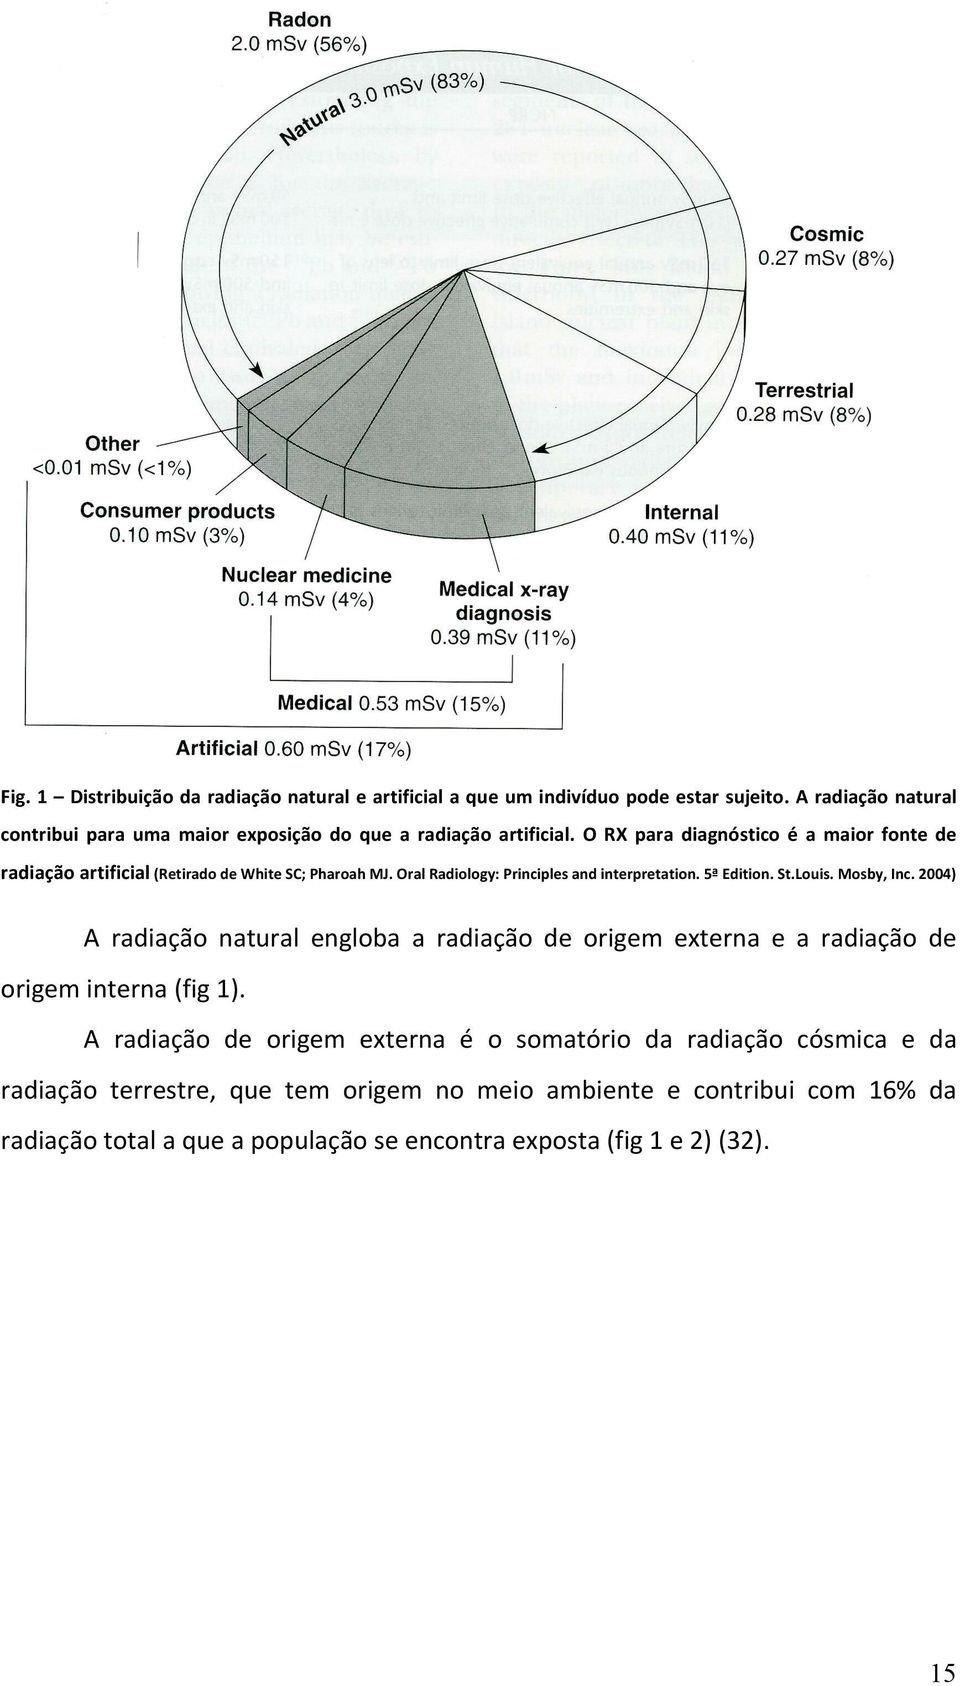 O RX para diagnóstico é a maior fonte de radiação artificial (Retirado de White SC; Pharoah MJ. Oral Radiology: Principles and interpretation. 5ª Edition. St.Louis.